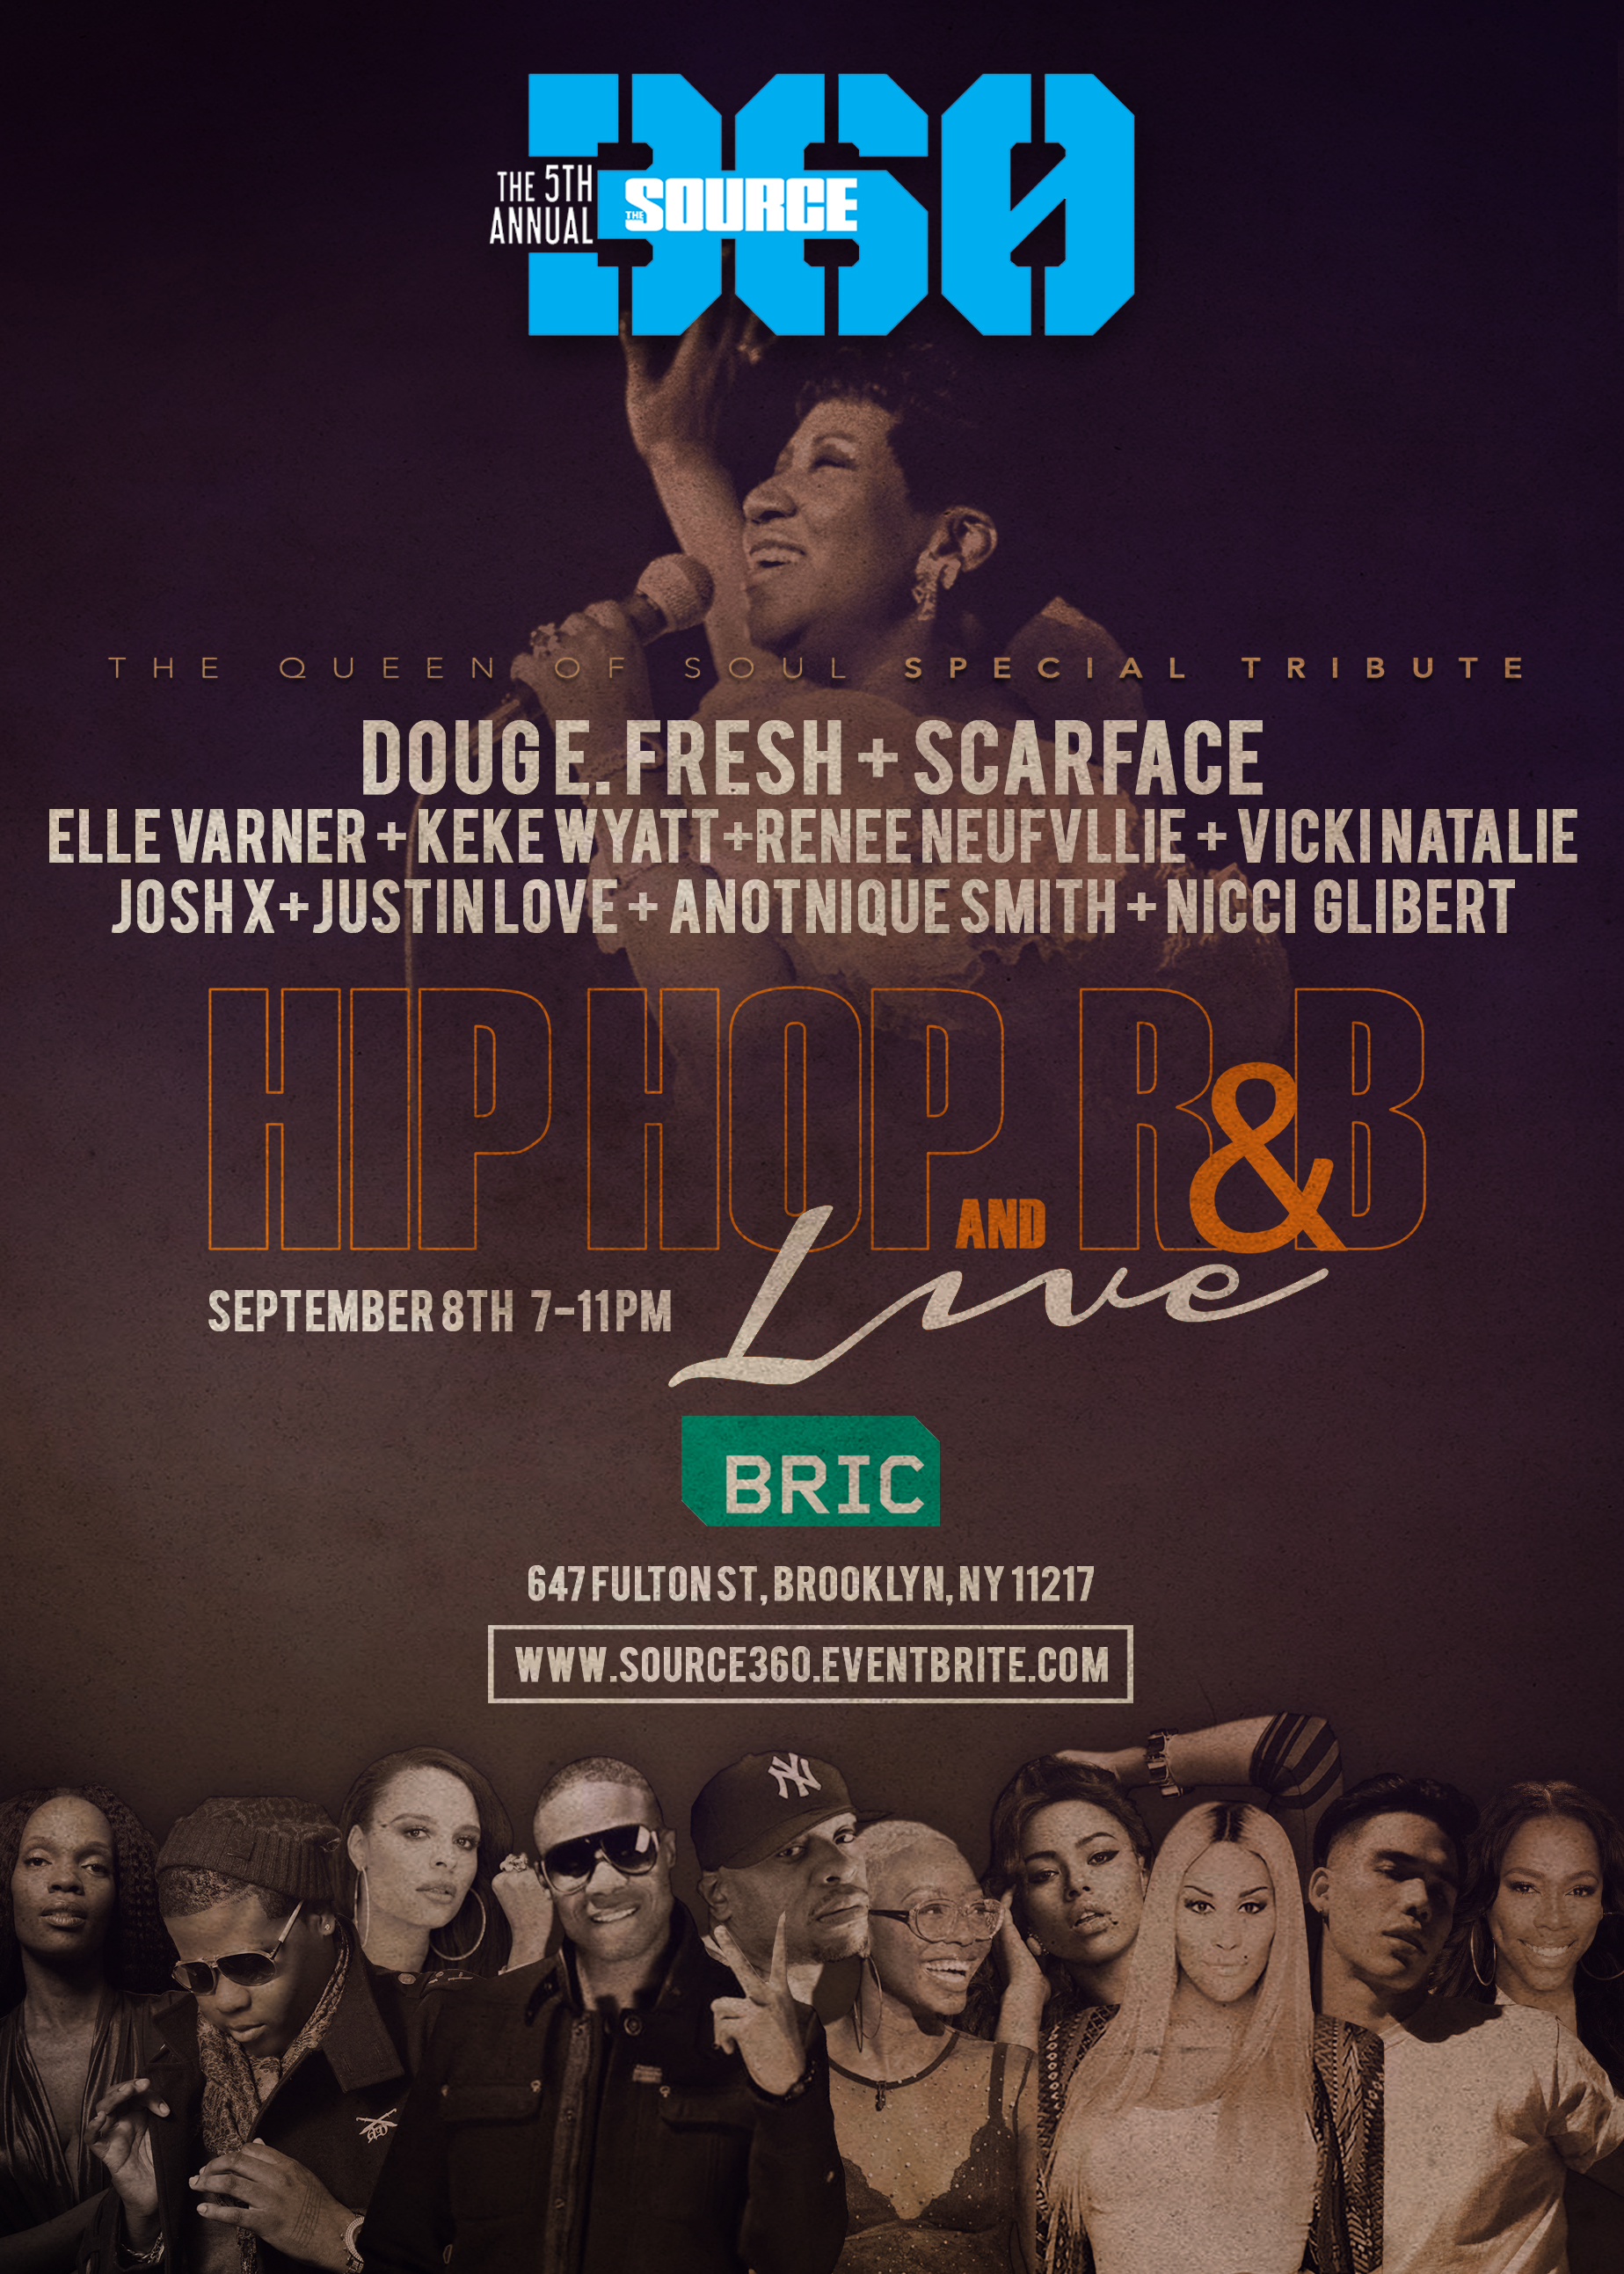 Doug E. Fresh, Scarface, Elle Varner, KeKe Wyatt & More to Honor Aretha Franklin at 5th Annual SOURCE 360 Festival & Music Conference